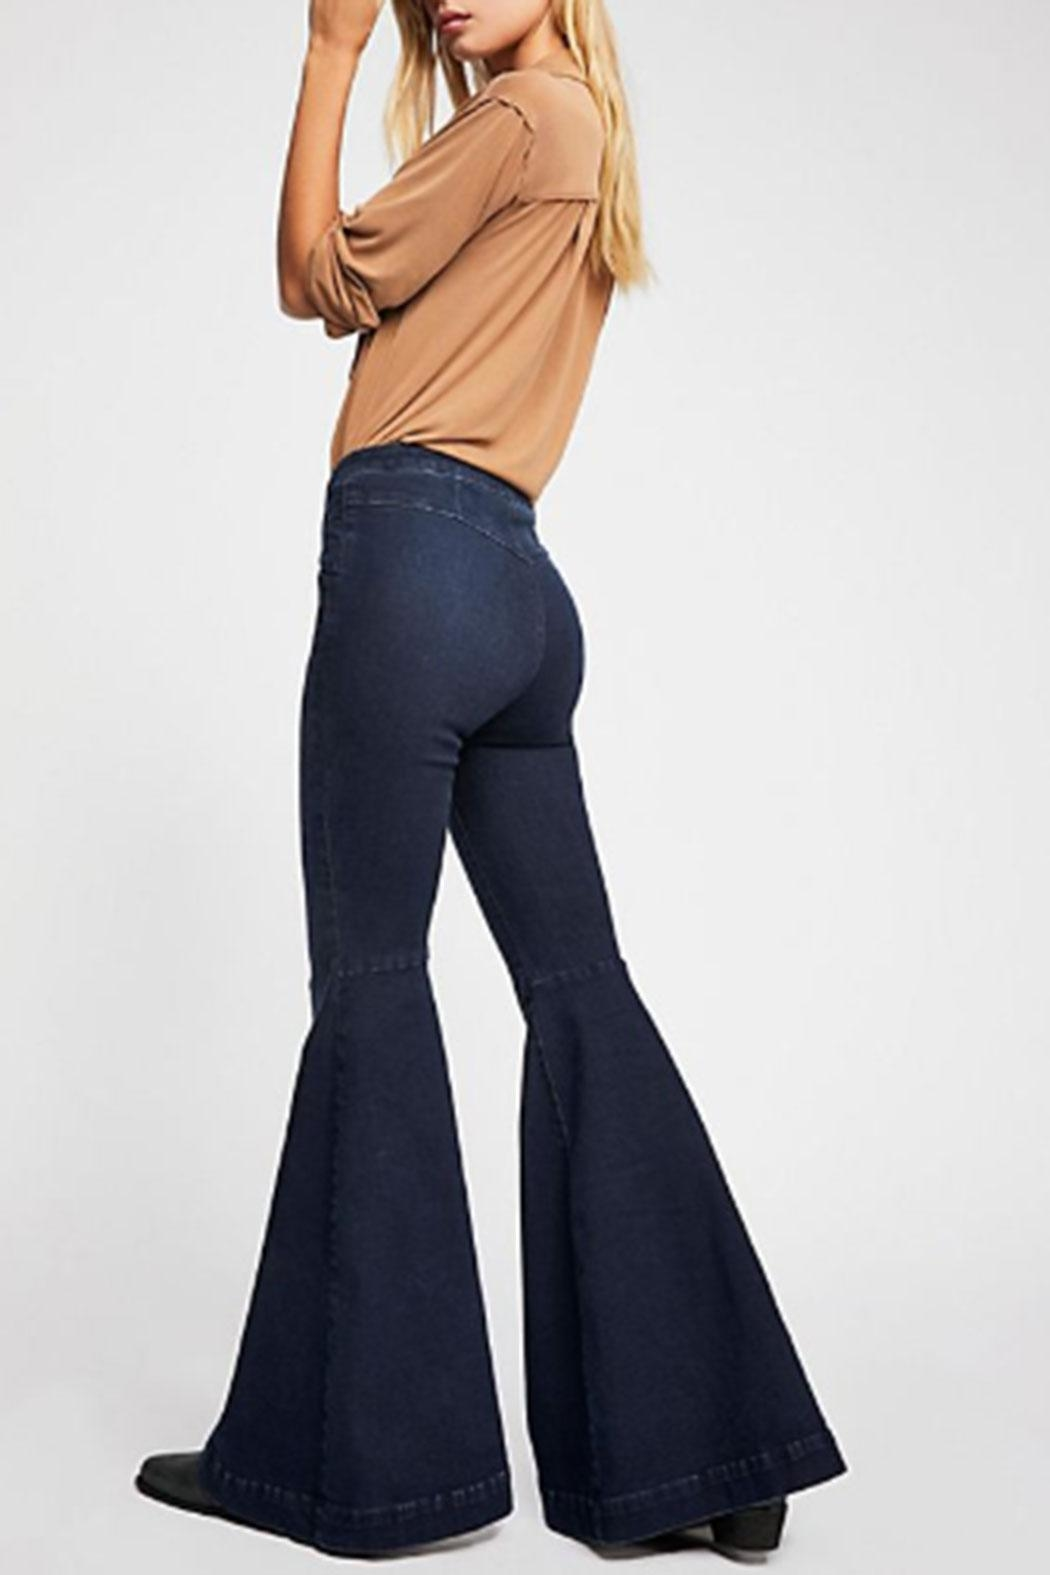 Free People Maddox Denim-Flare Jeans - Side Cropped Image